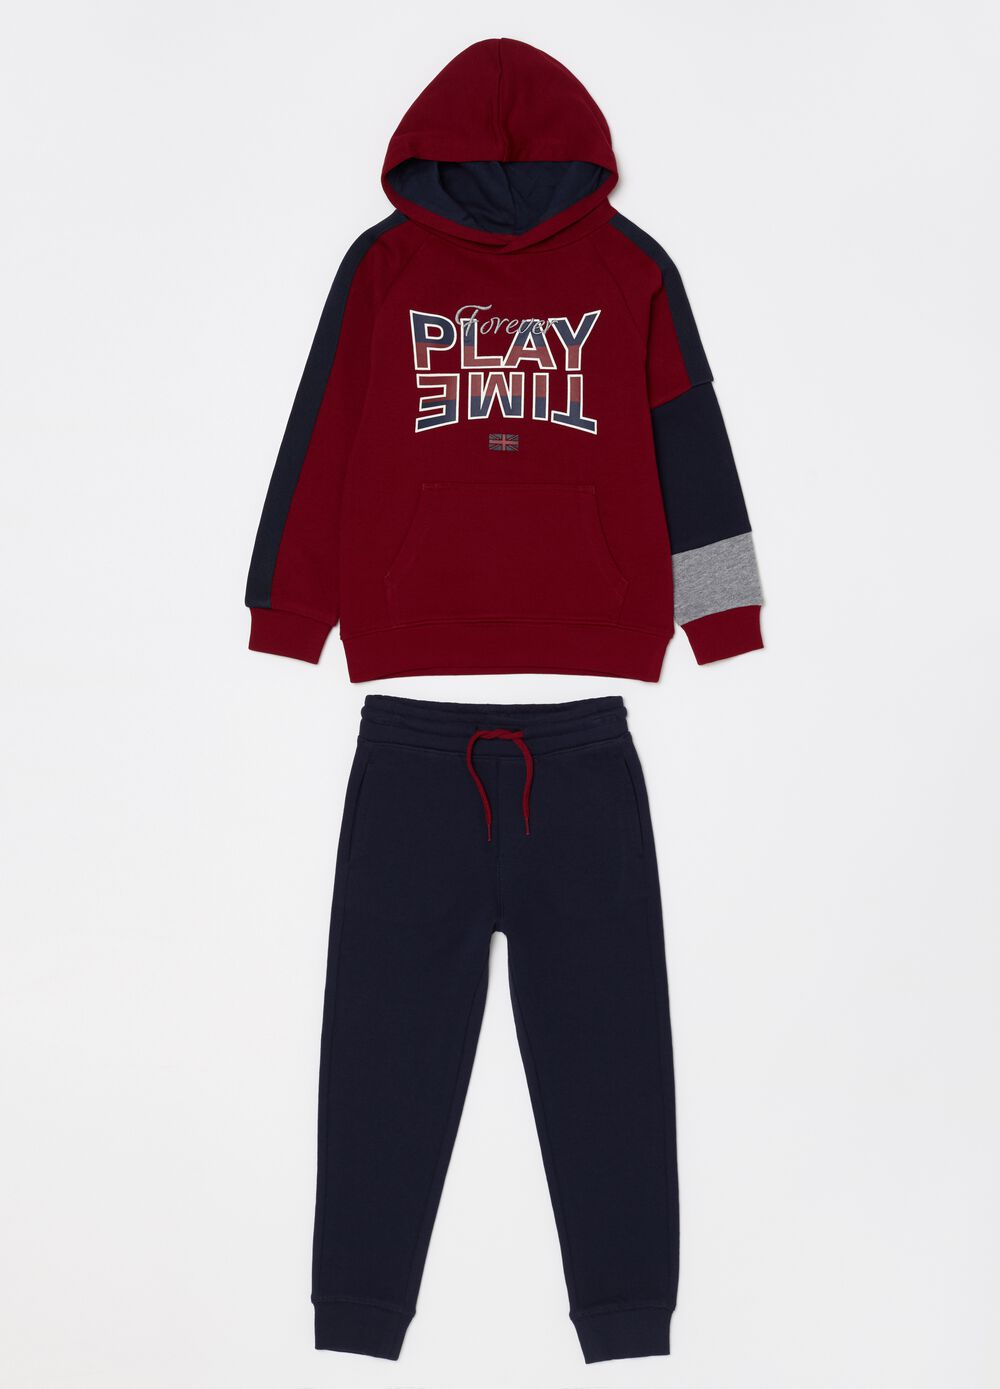 Jogging set in 100% cotton French terry